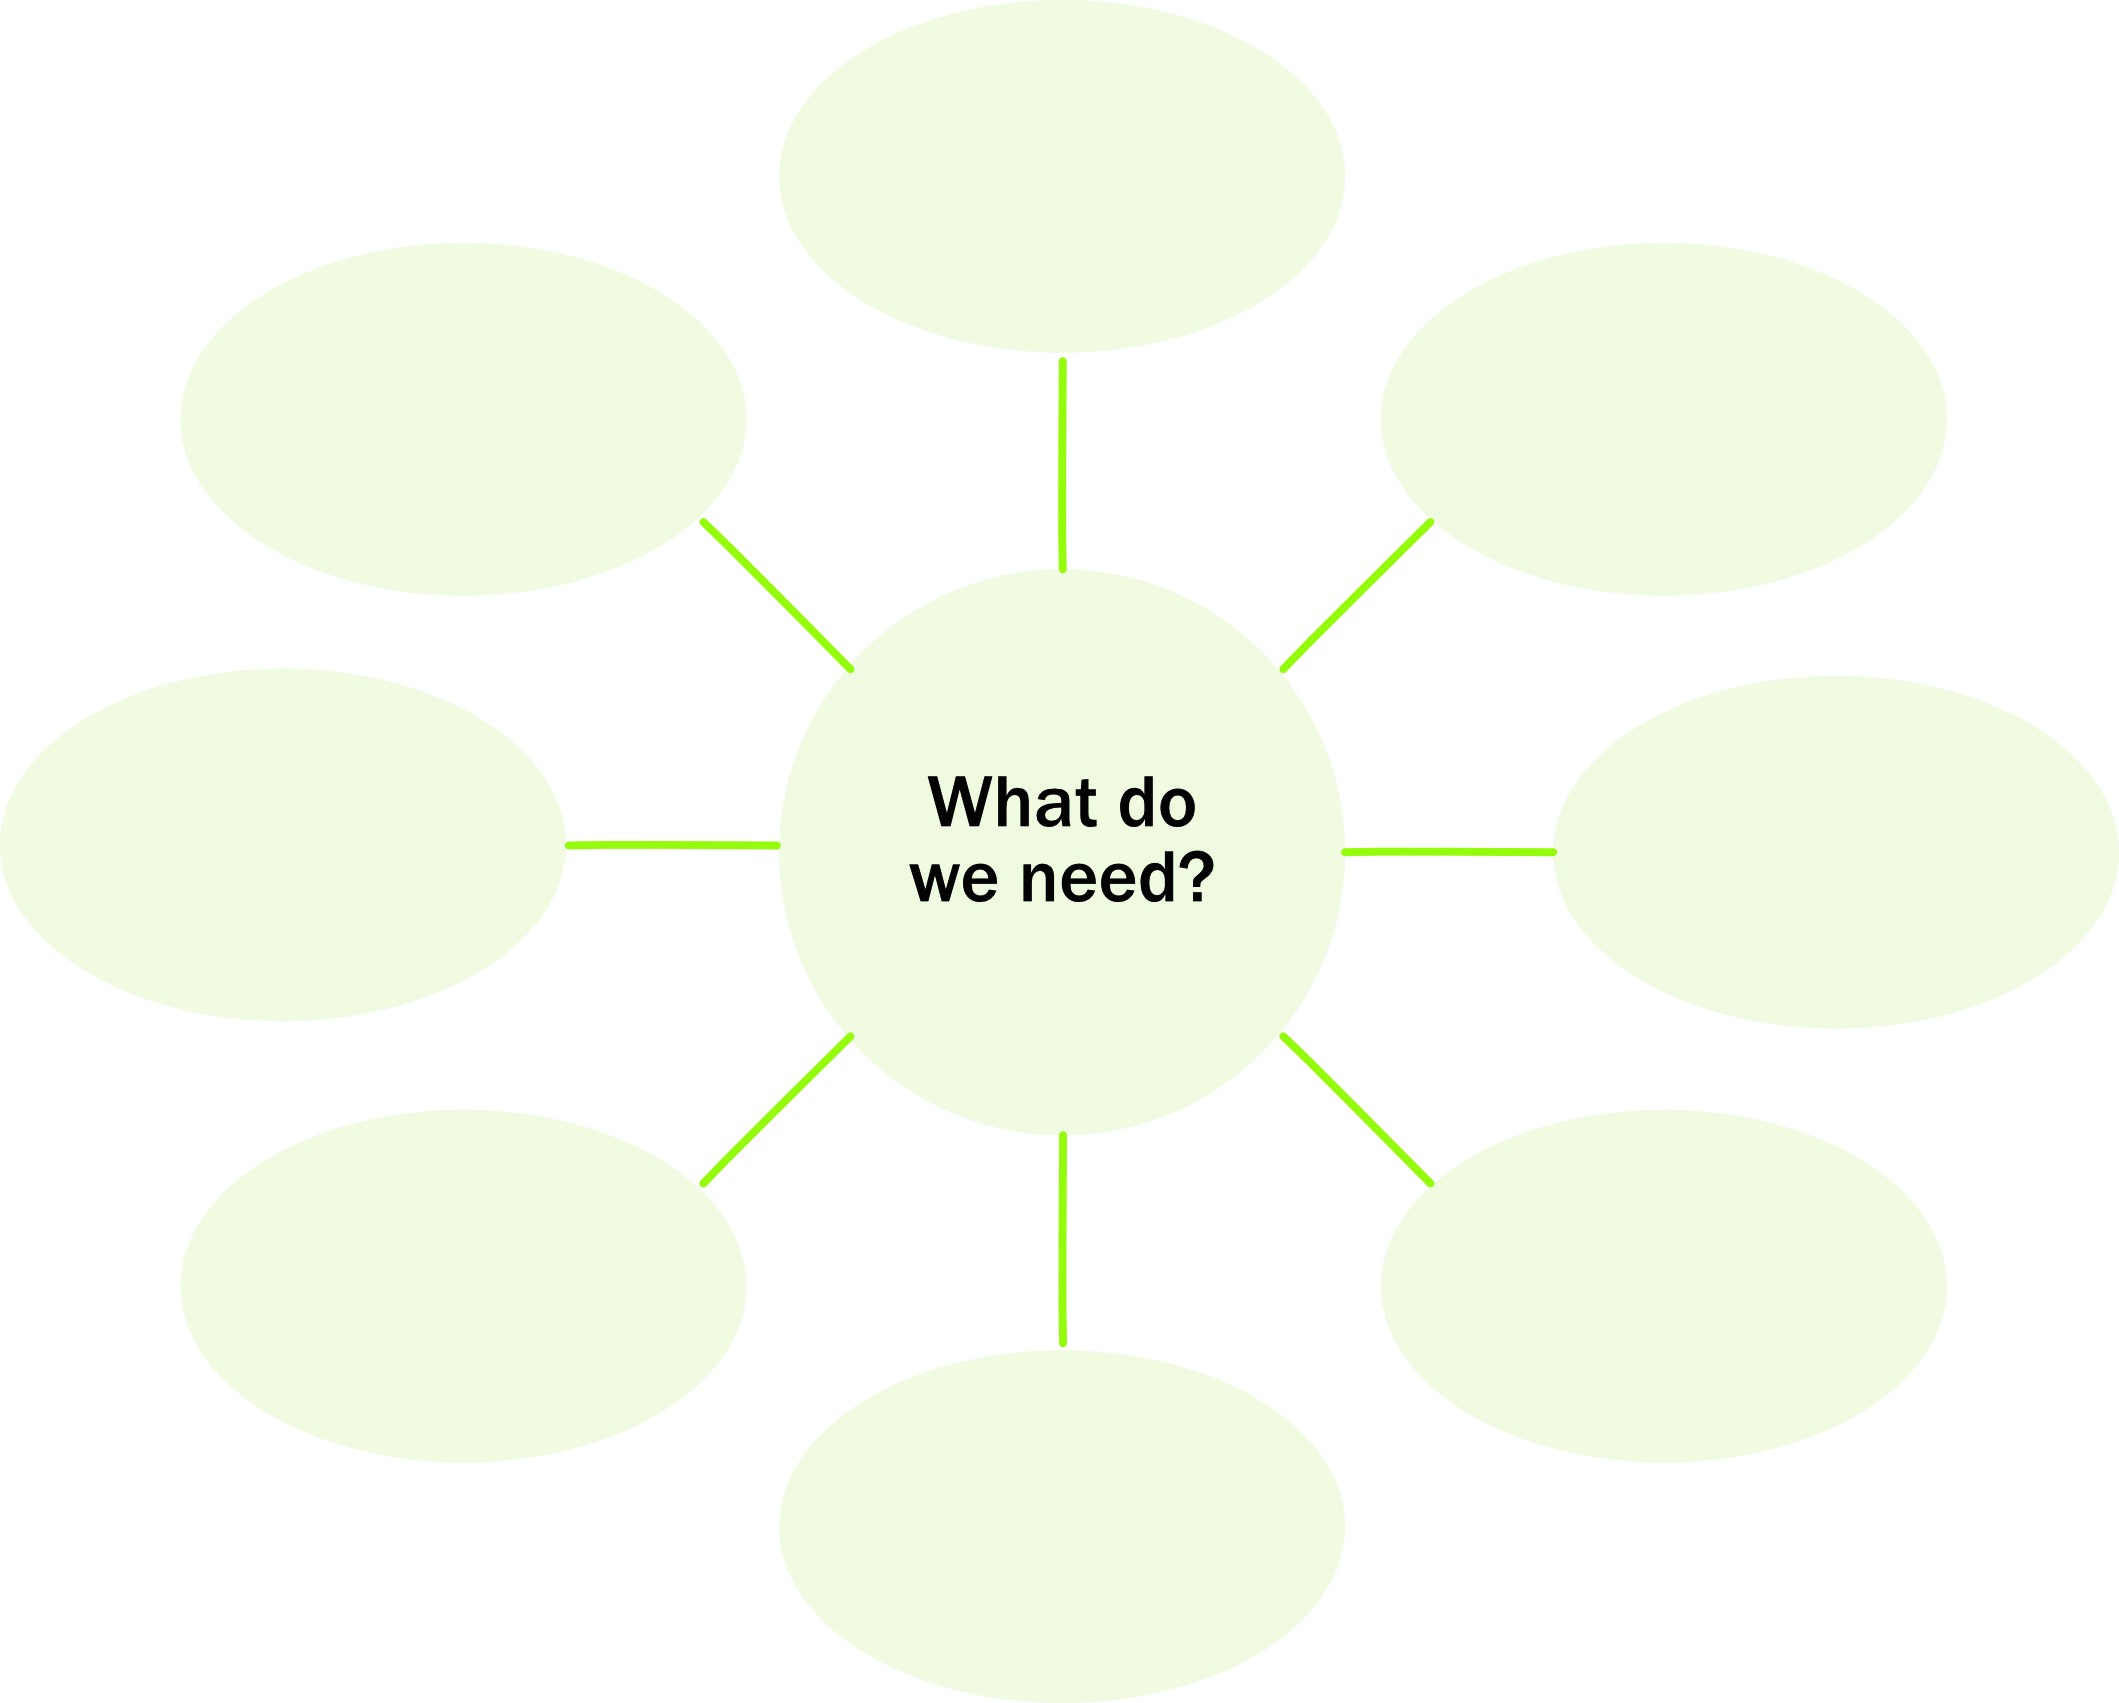 """An empty bubble chart with the question """"What do we need?"""" written in the middle."""